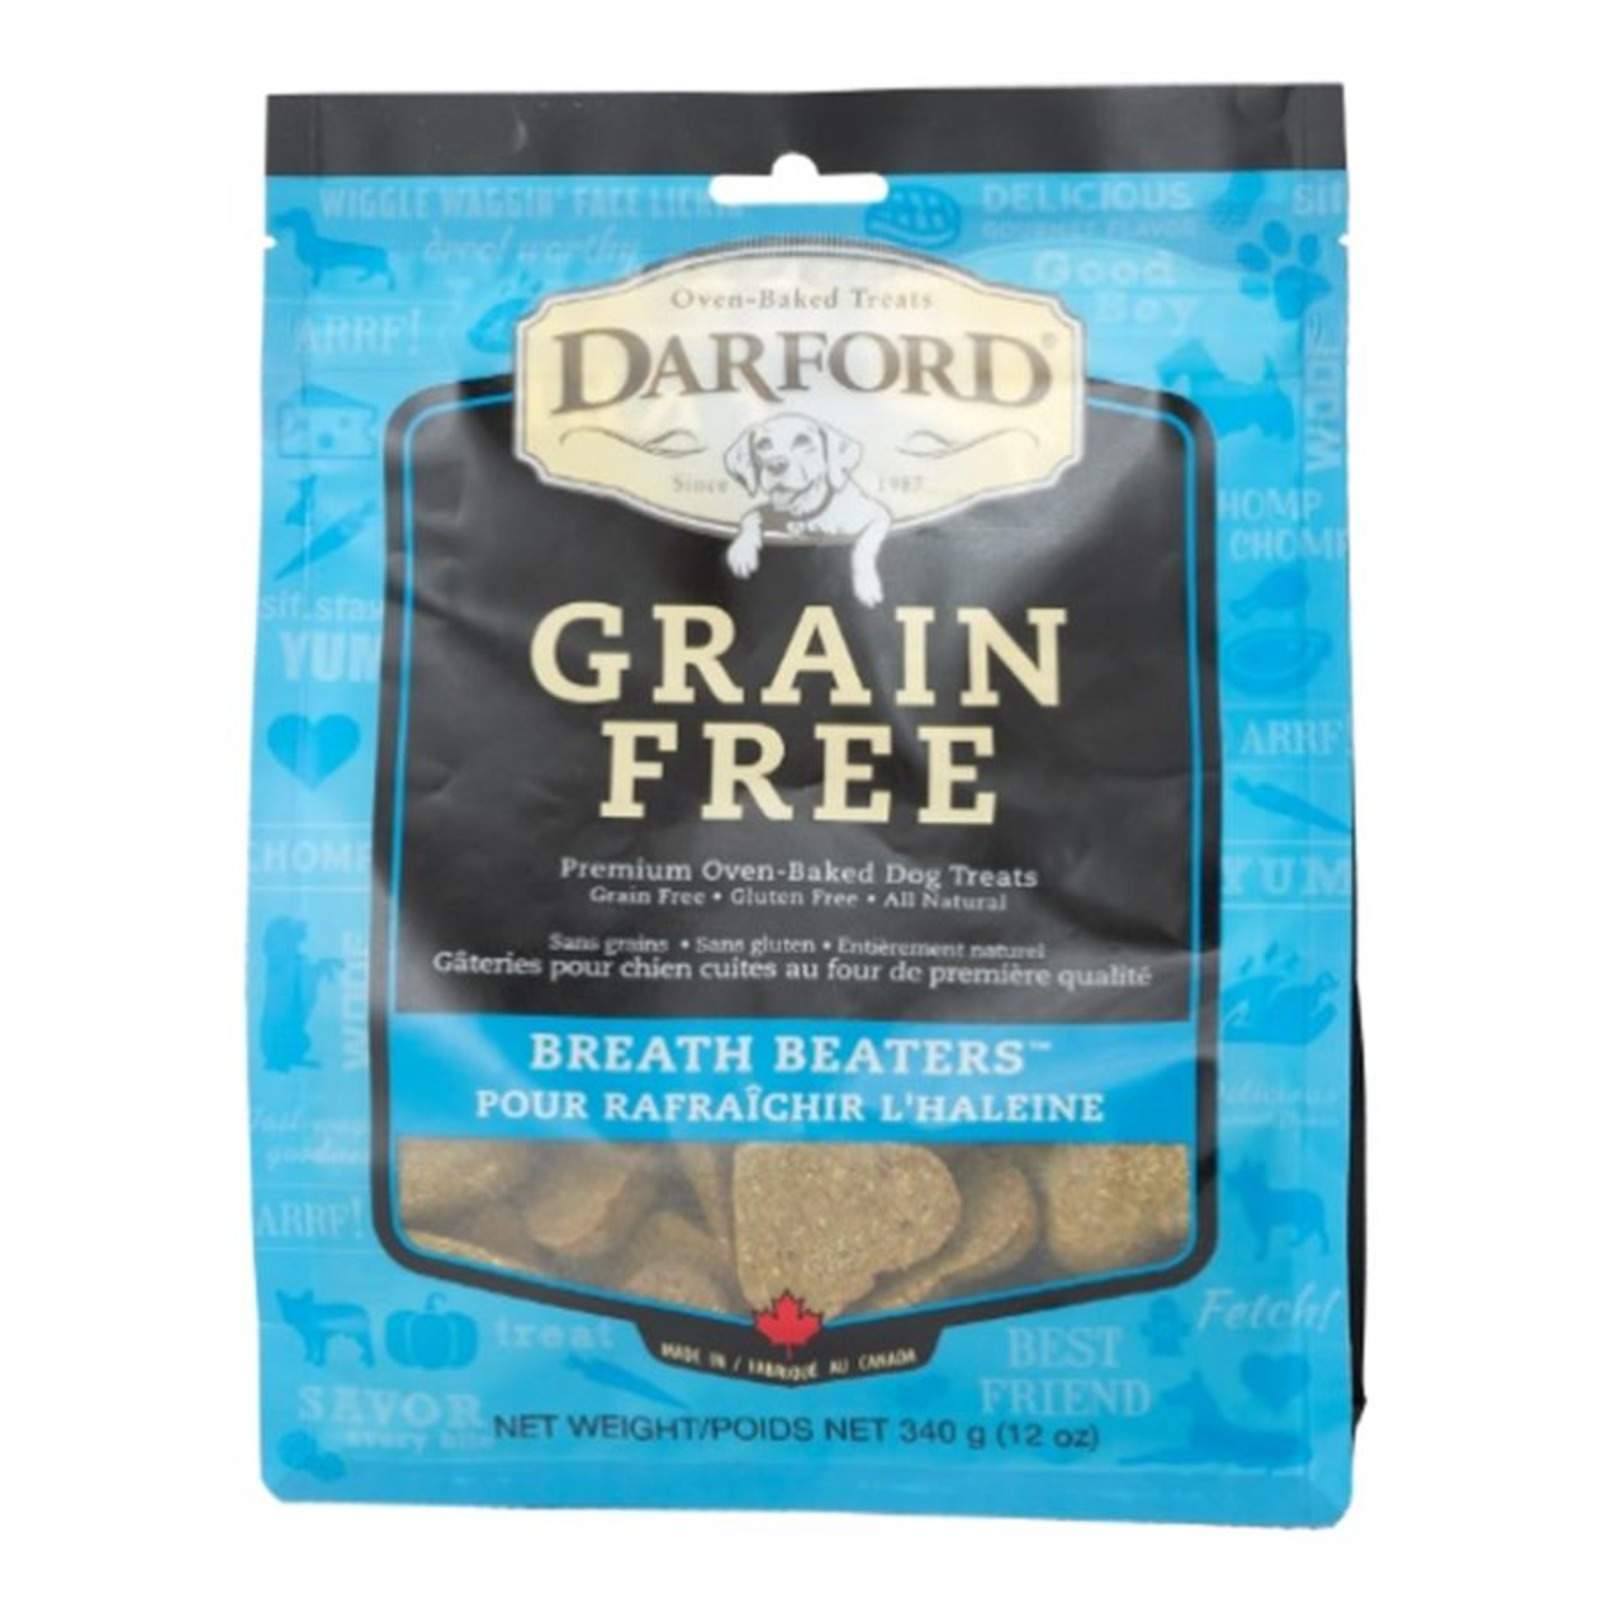 Darford Breath Beaters